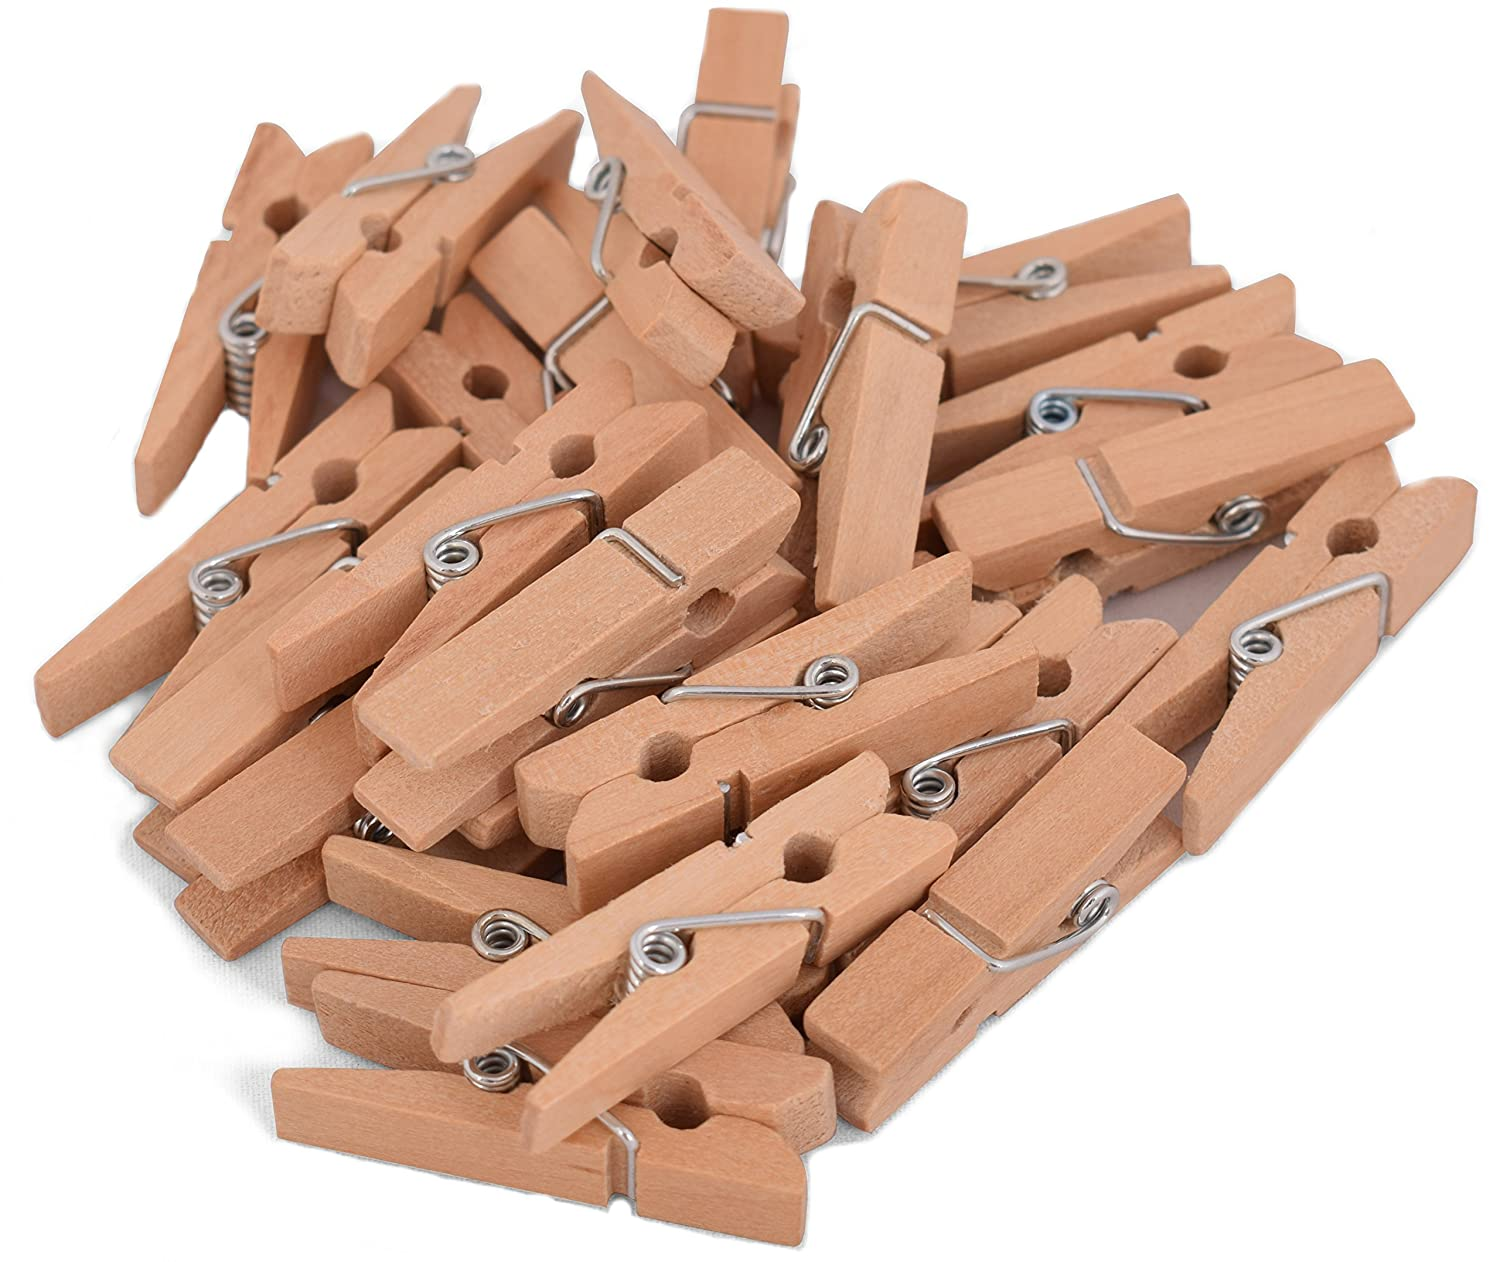 100-Pack of 1 3/8 Inch (35mm) Small Clothespins Wood. Mini Natural Wooden Clothes pins for Home School Arts Crafts Decor DIY Screen, Tiny Clothespins Photo Paper Peg Pin Craft Clips Maks Guzz